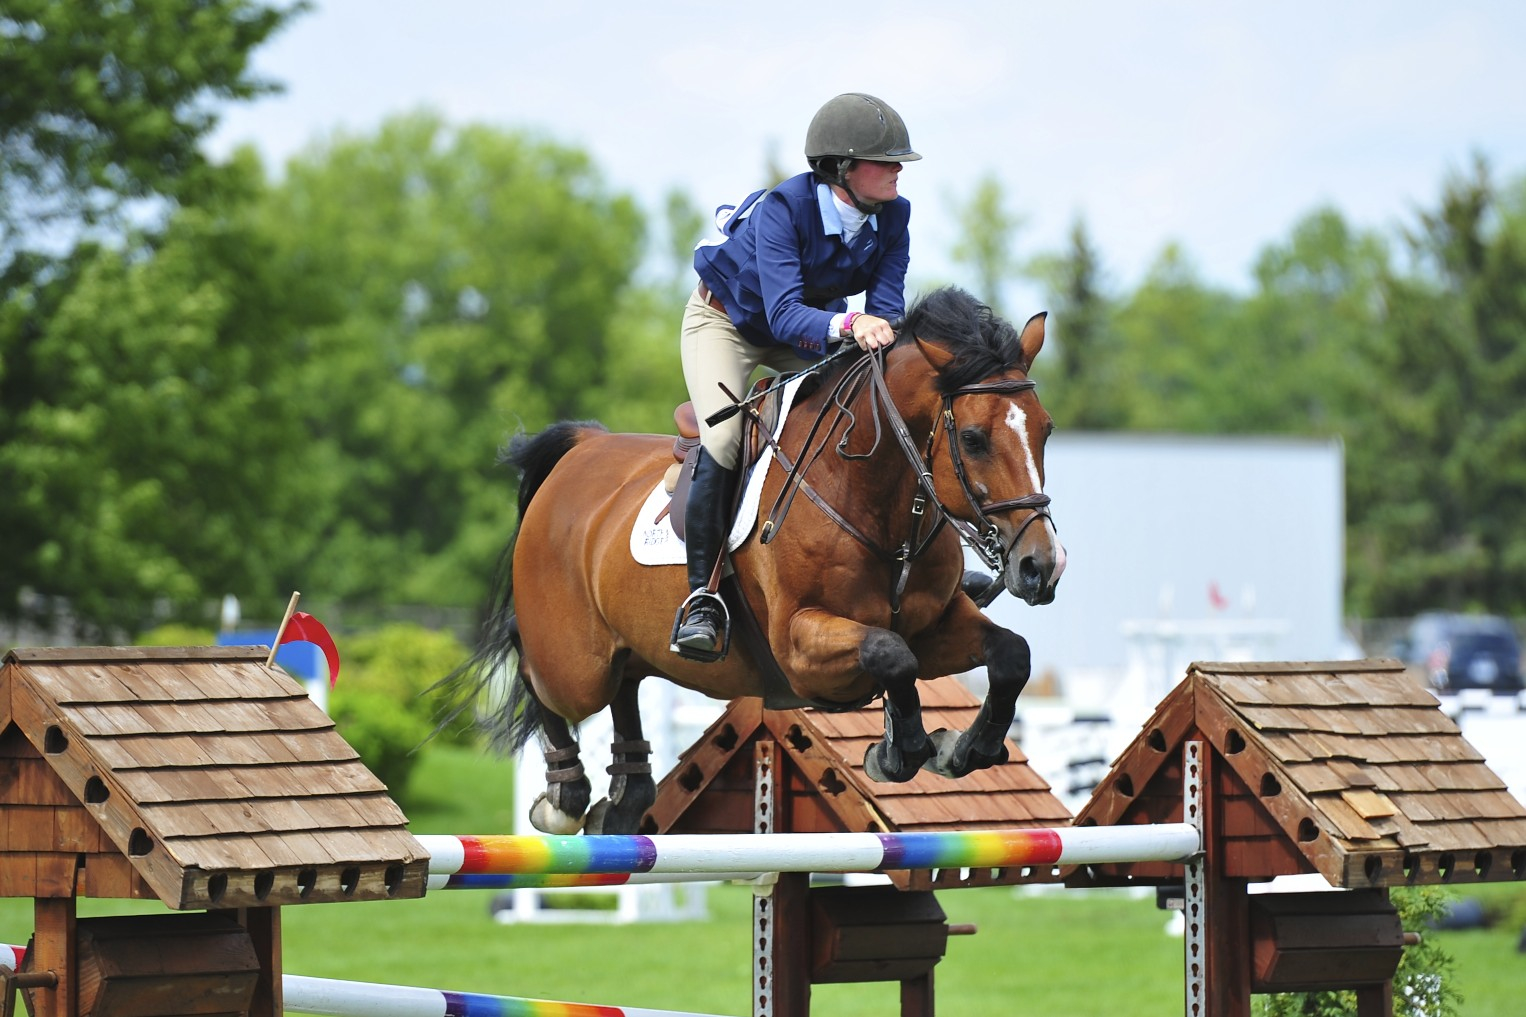 Sarah Johnstone Defends Her Title At National Capital Show